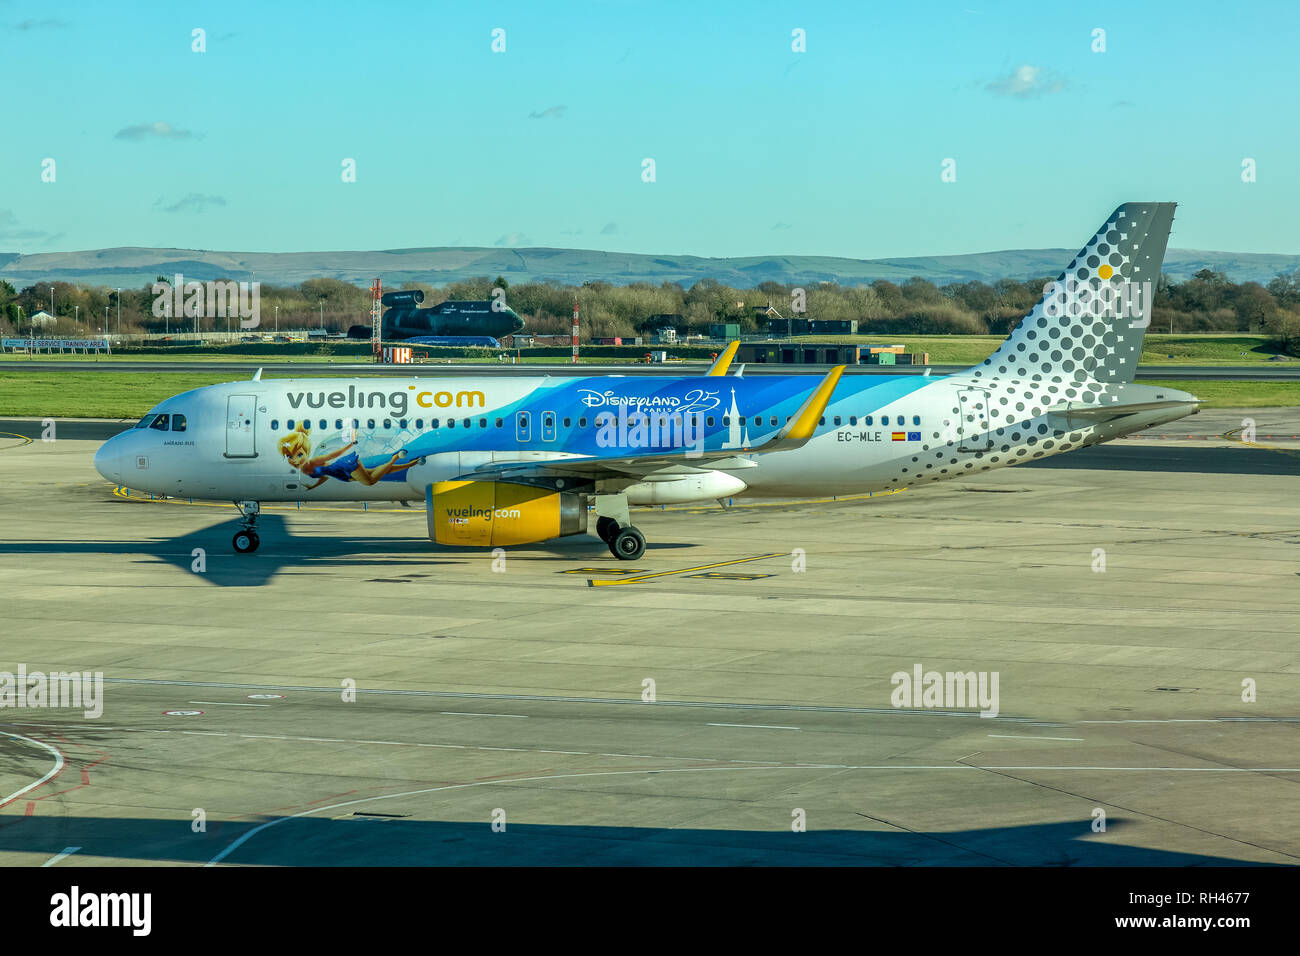 A Vueling Airlines Airbus A320 aircraft, registered EC-MLE, and showing a livery advertising 25 years of Disneyland Paris, at Manchester Airport. - Stock Image